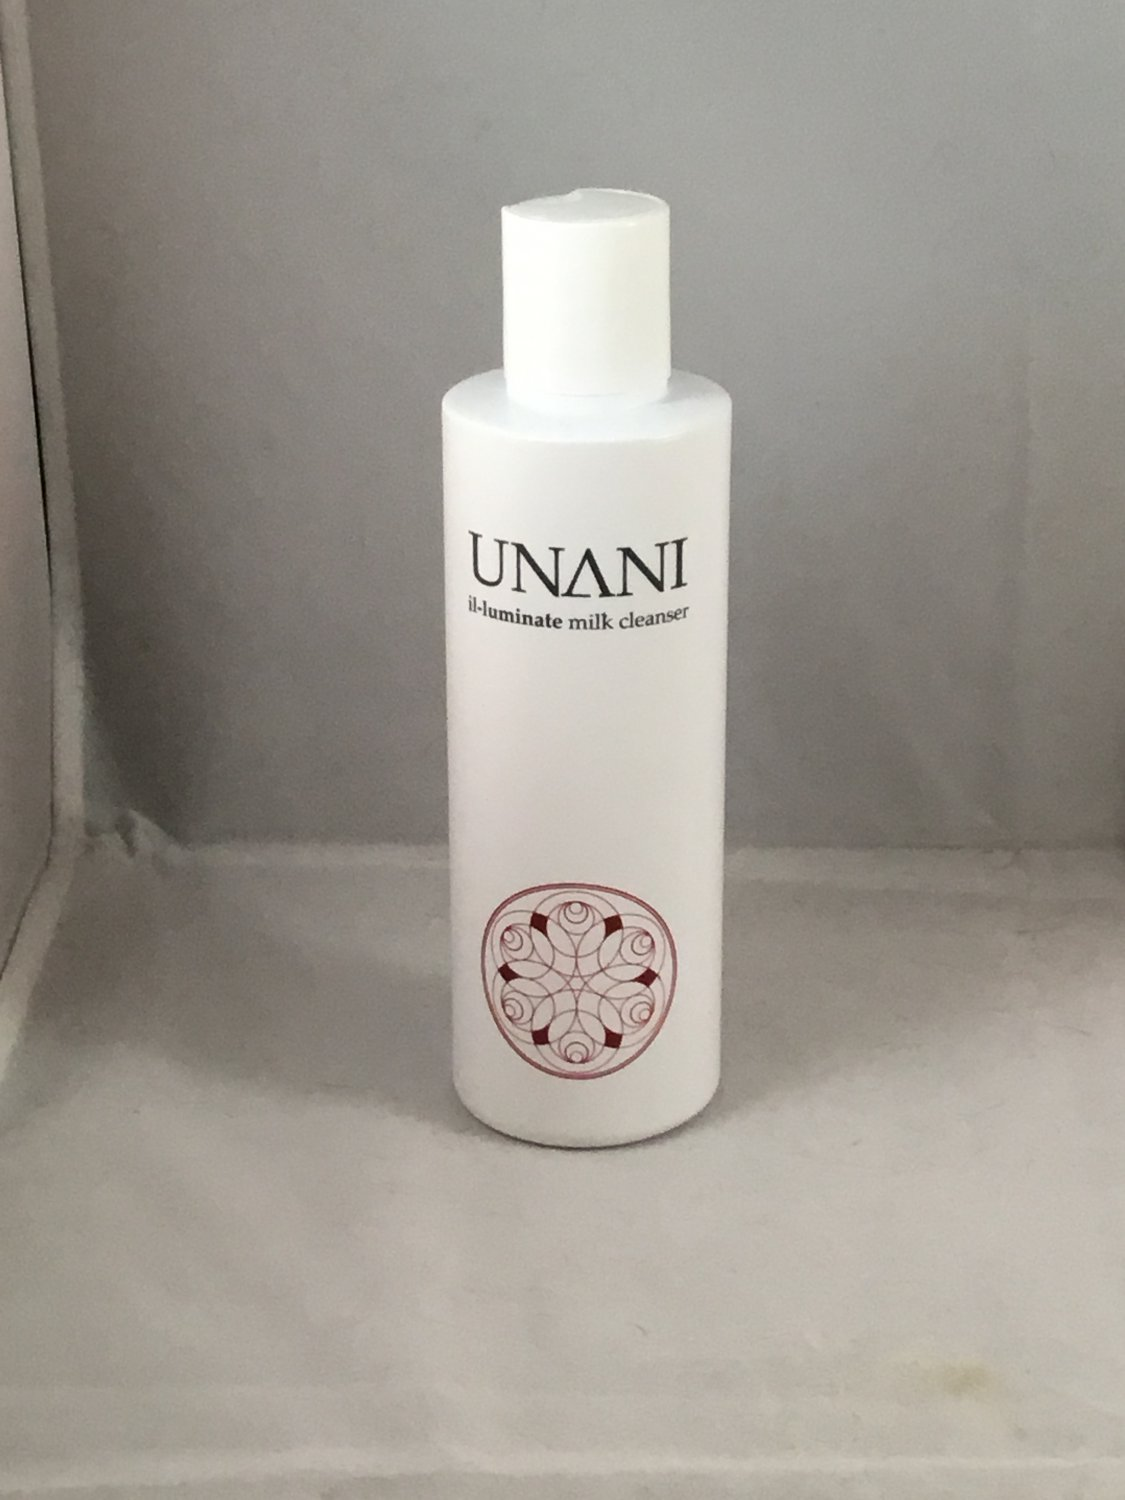 Unani Il-luminate Milk Cleanser Facial Gentle Cleansing Face